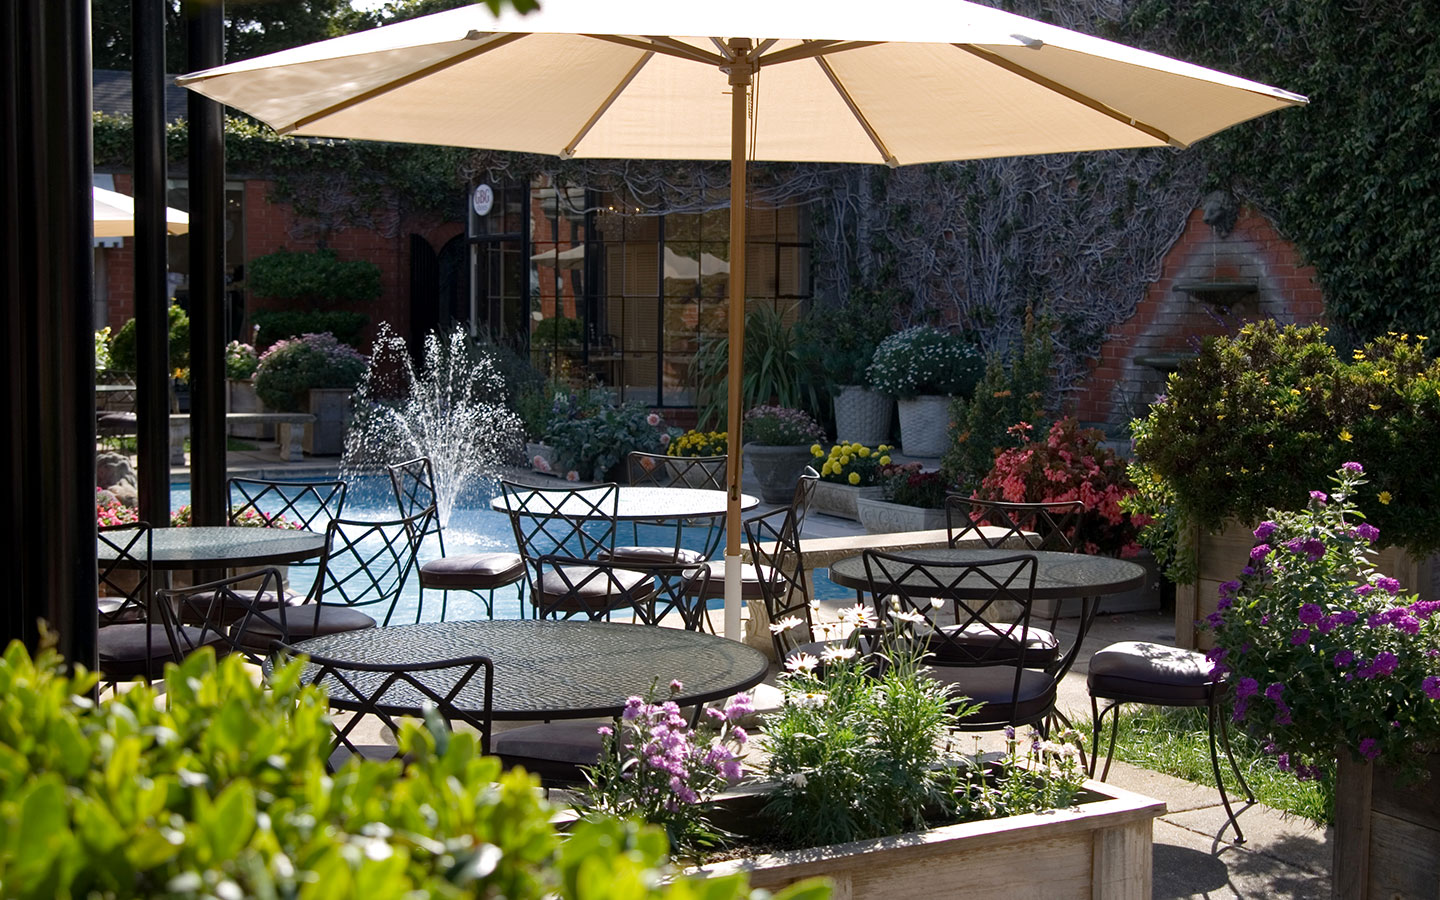 Mild temperatures year-round make patio seating a must!